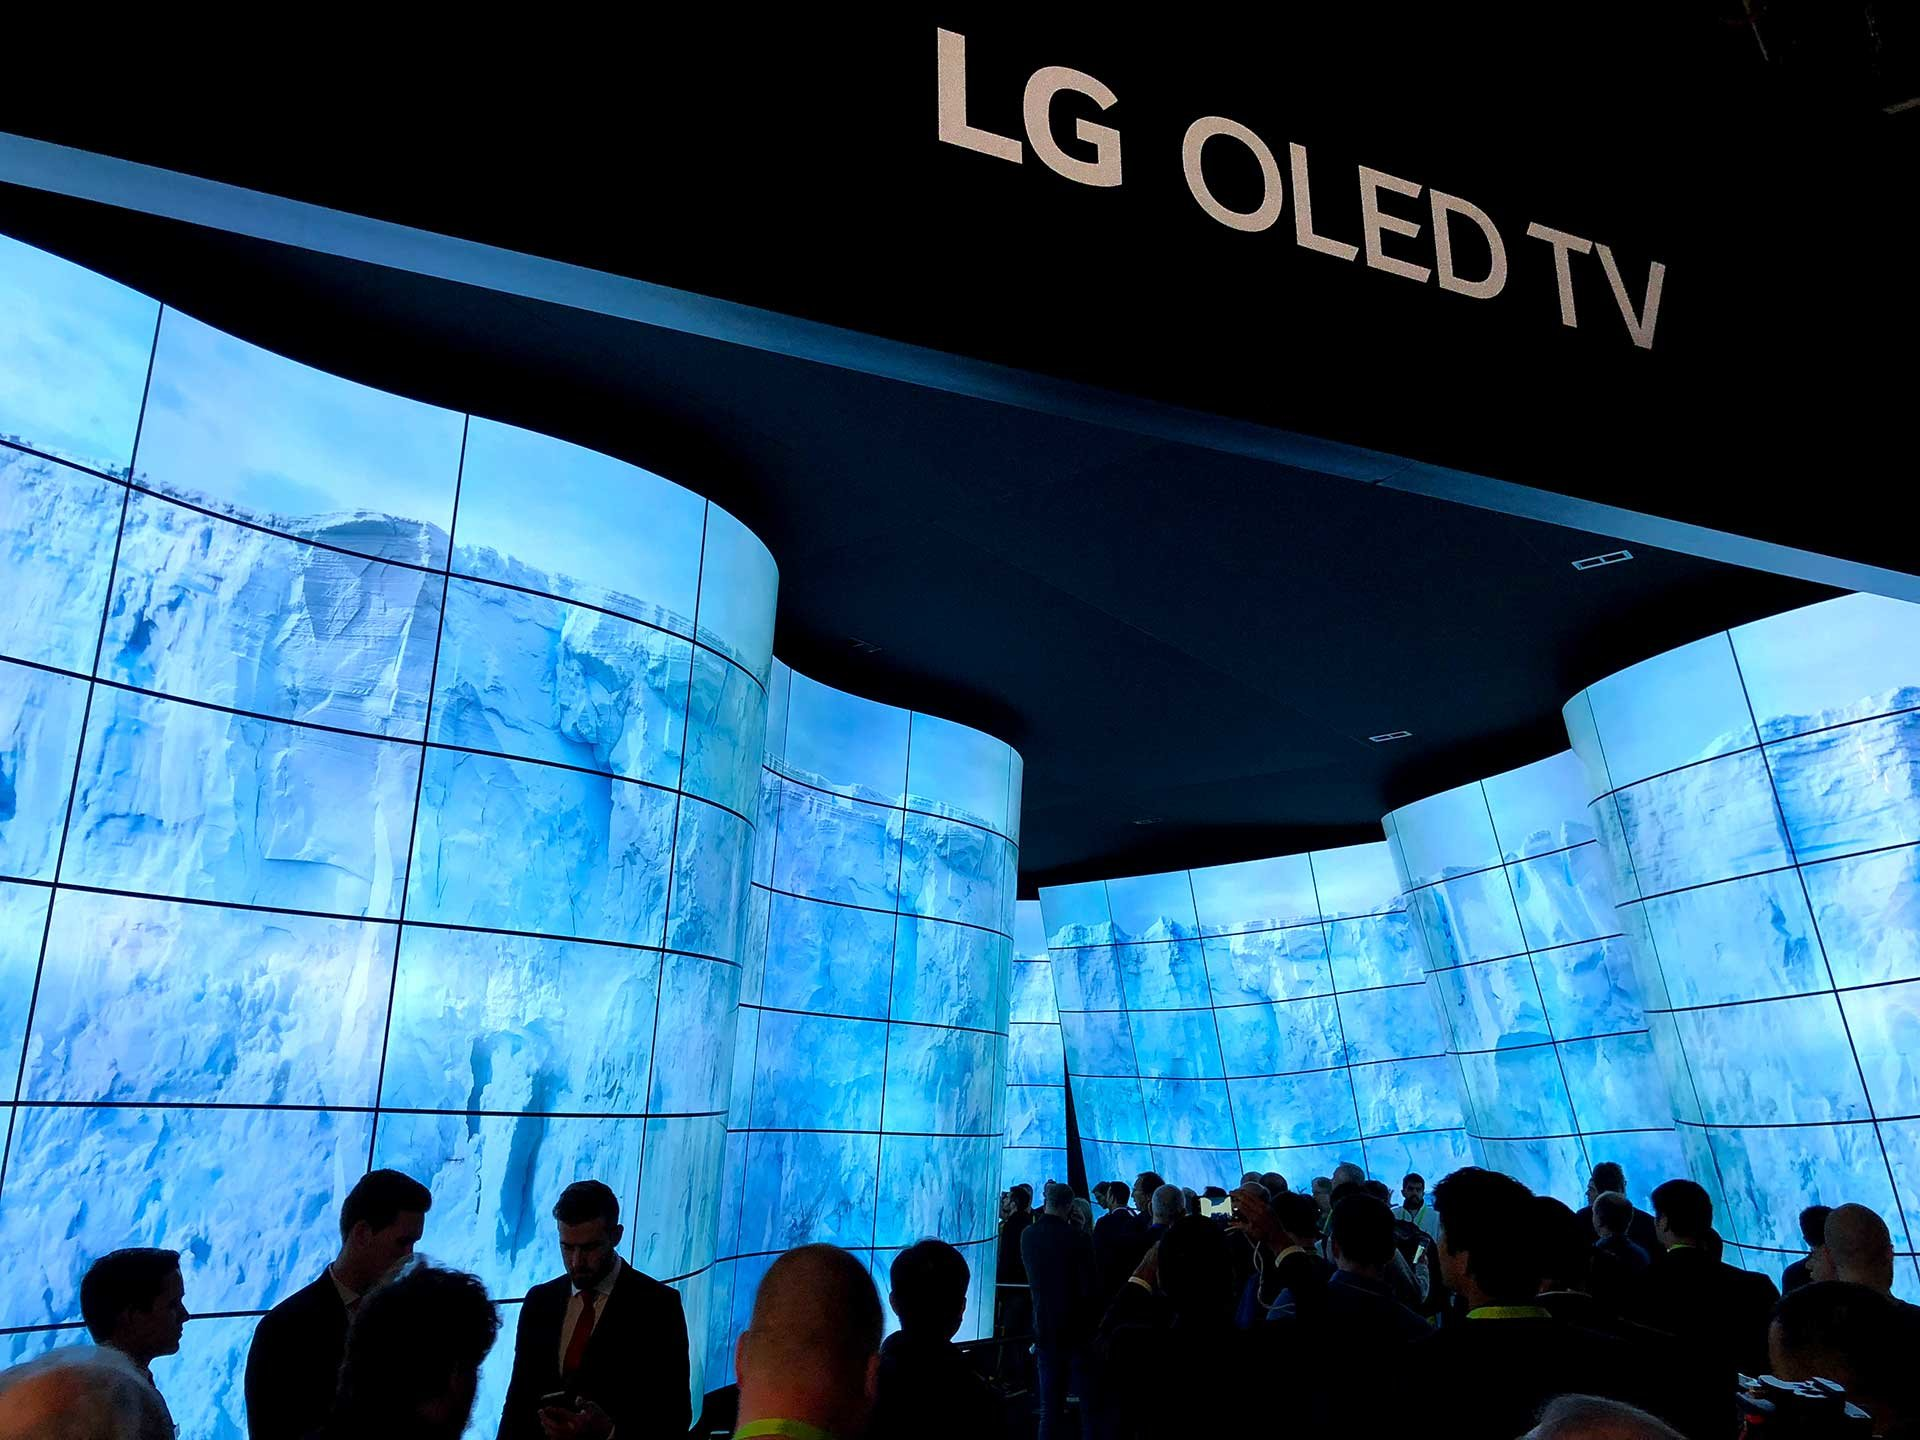 LG display experience at CES